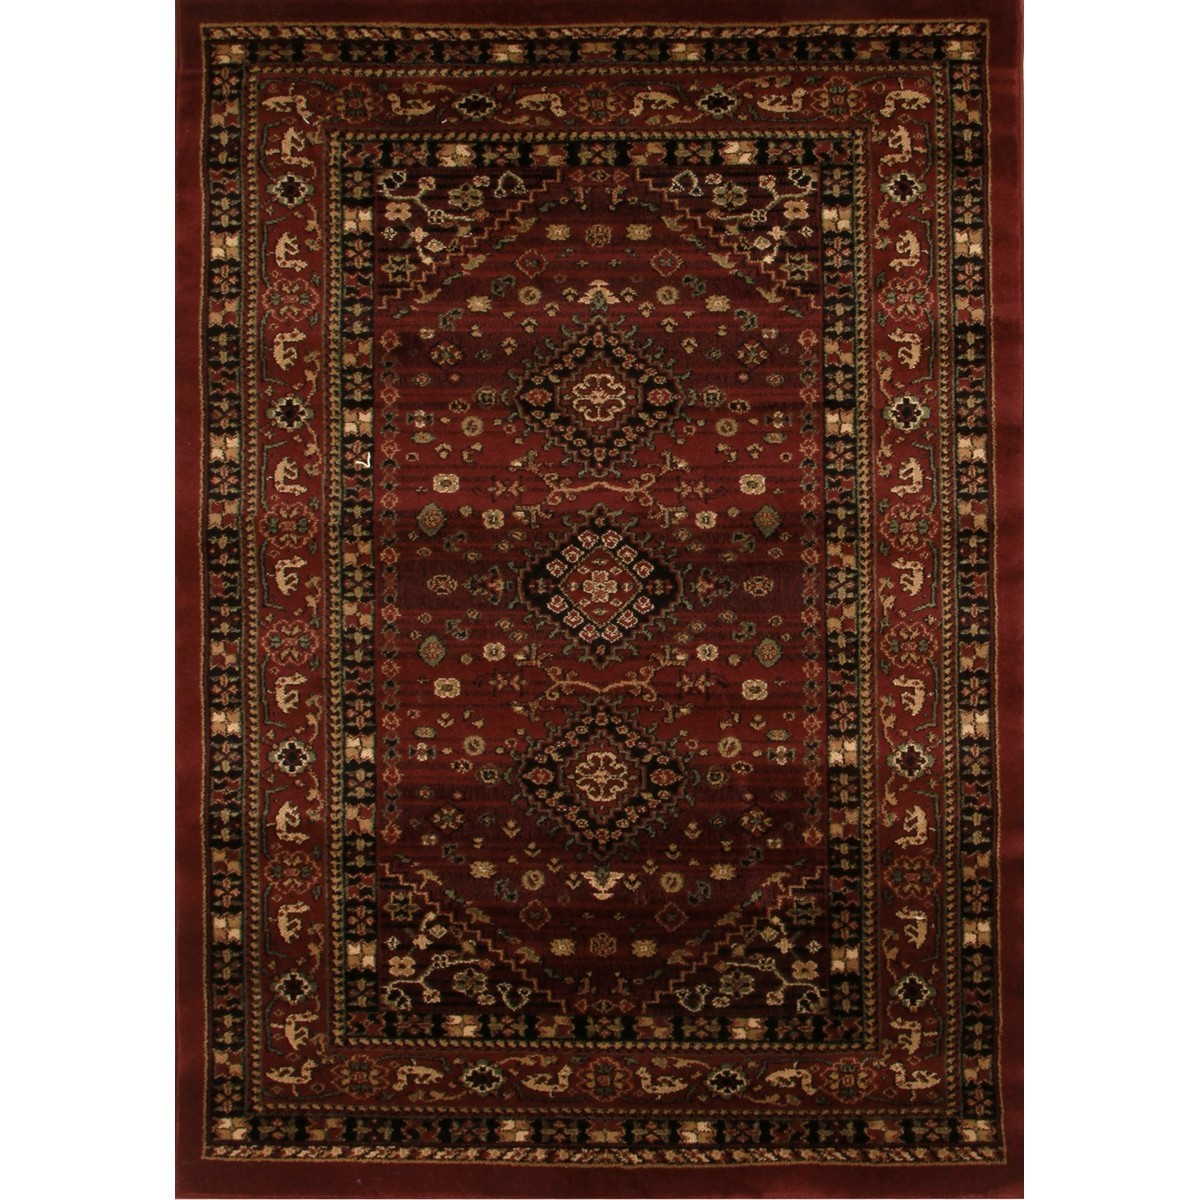 Istanbul Shiraz Turkish Made Oriental Rug, 170x120cm, Burgundy